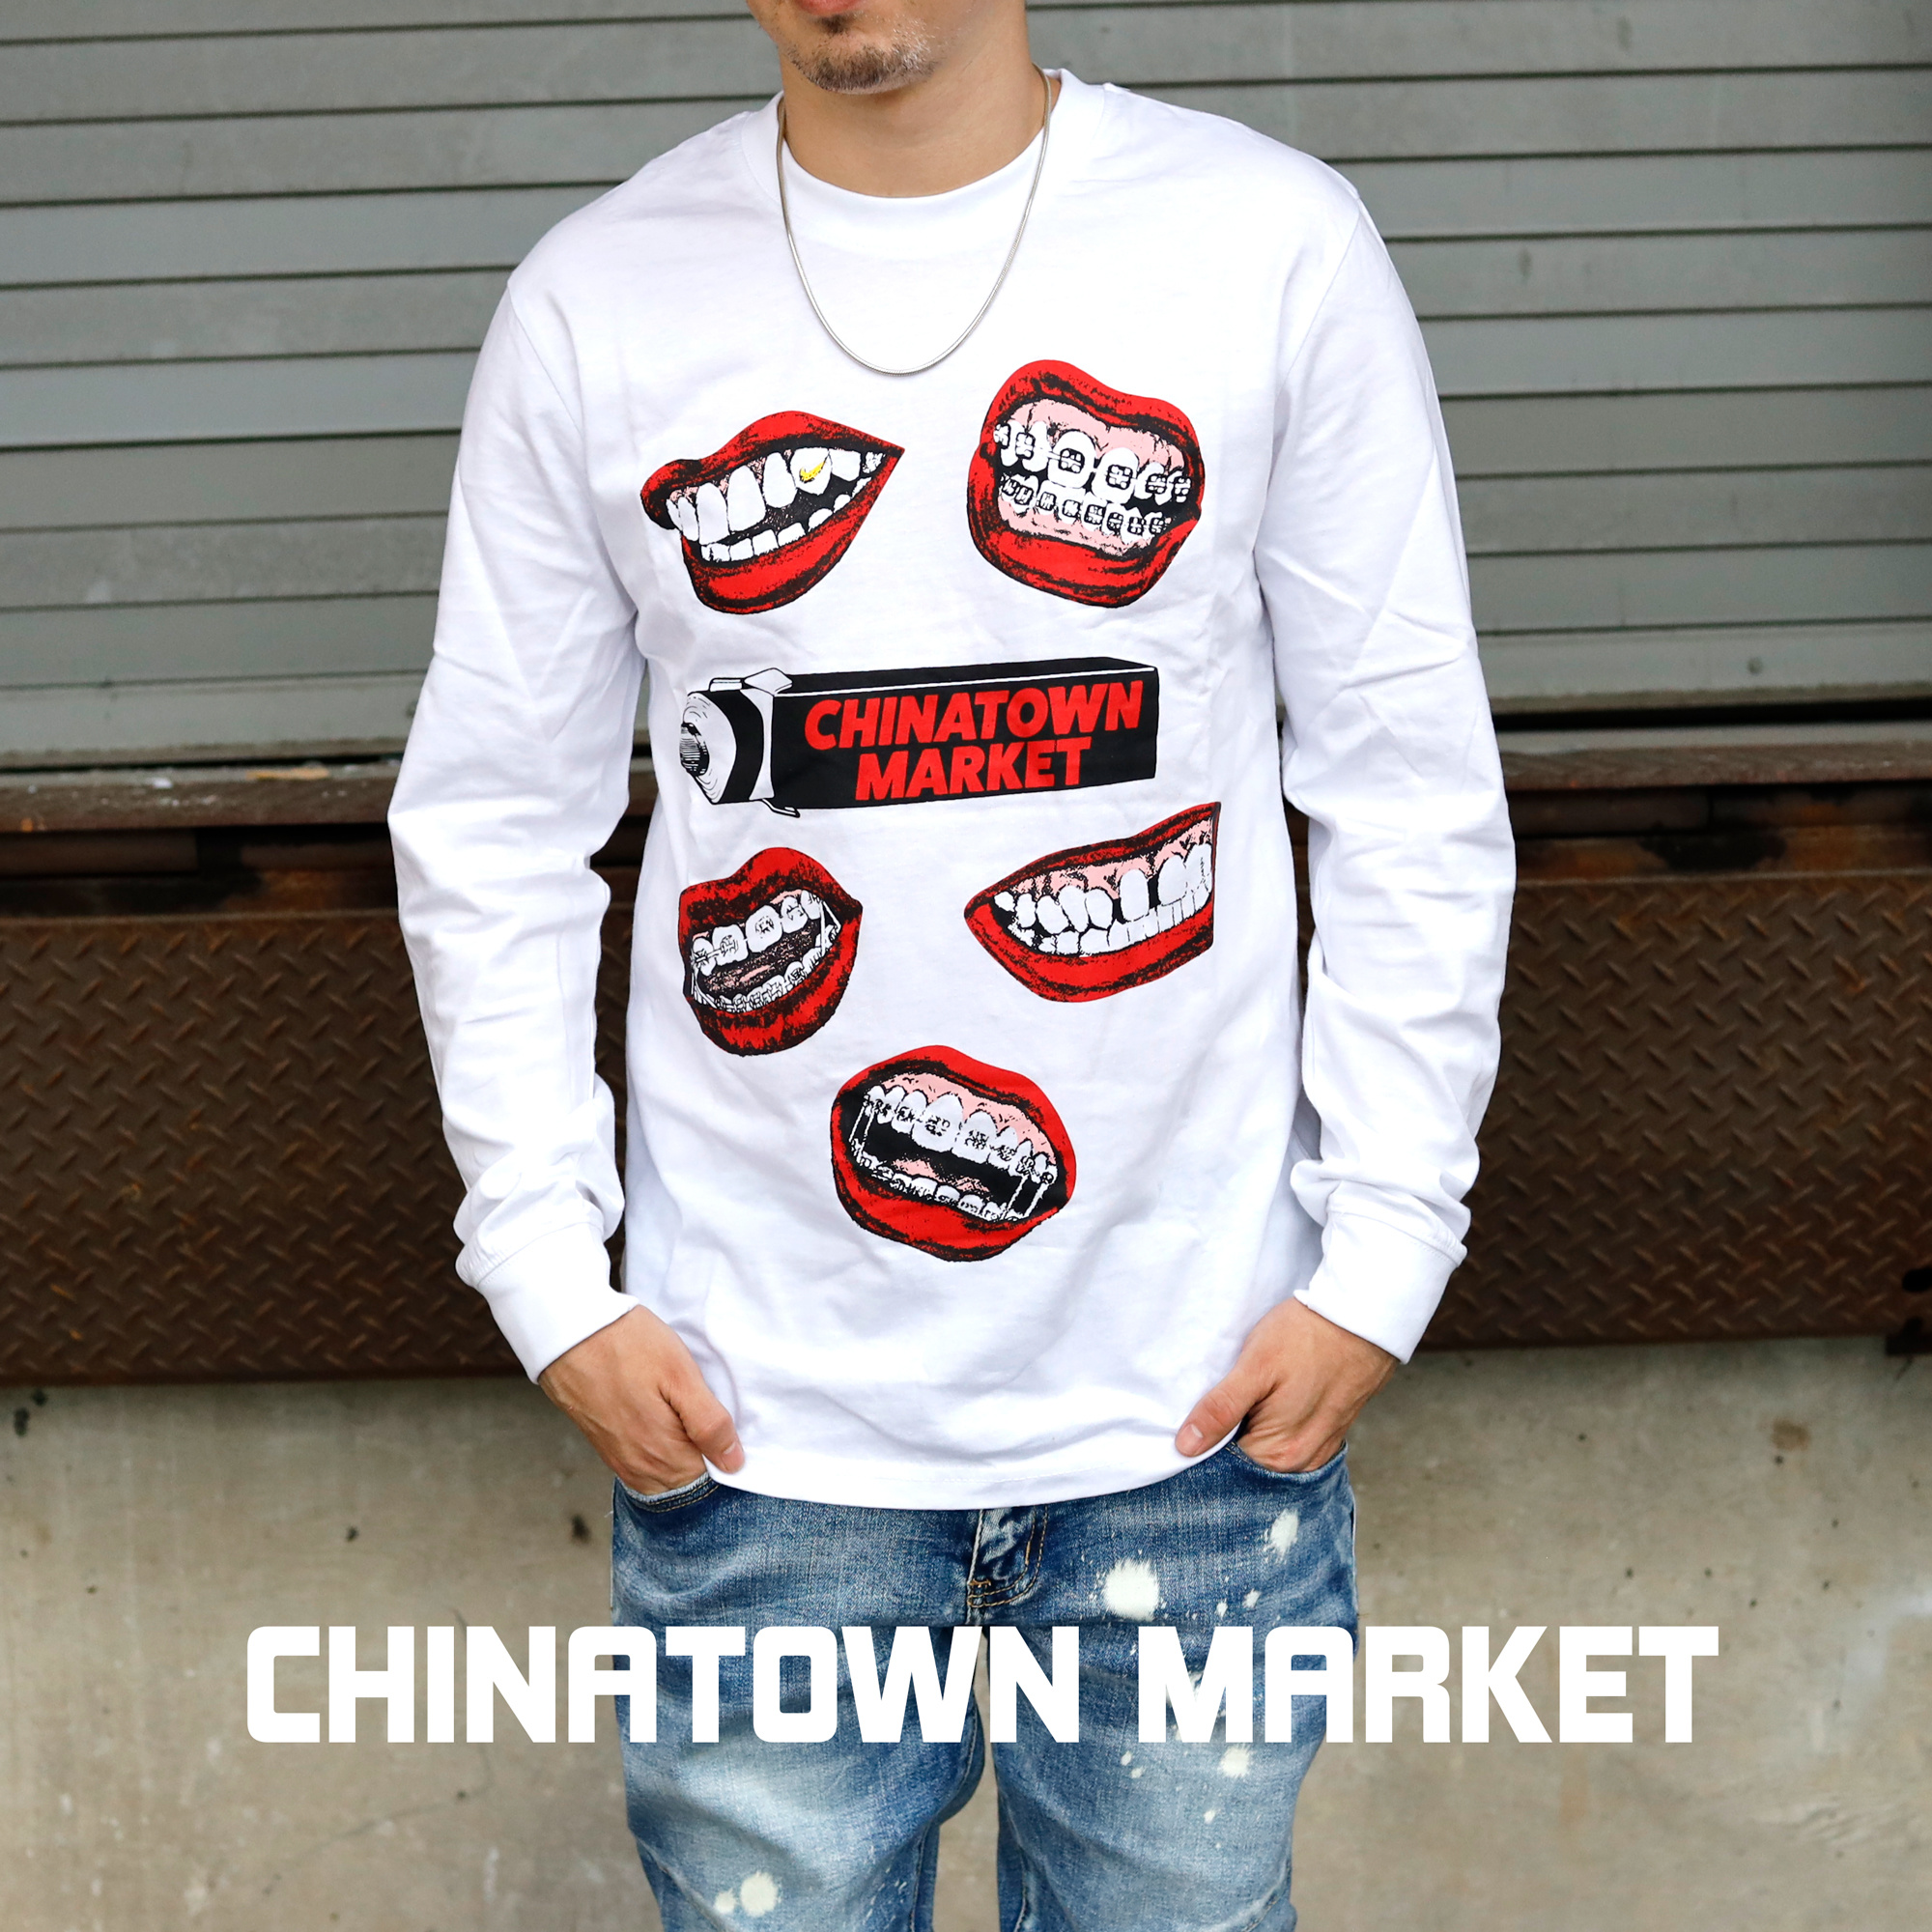 Chinatown Market Available Now!  YES, You Read right!!